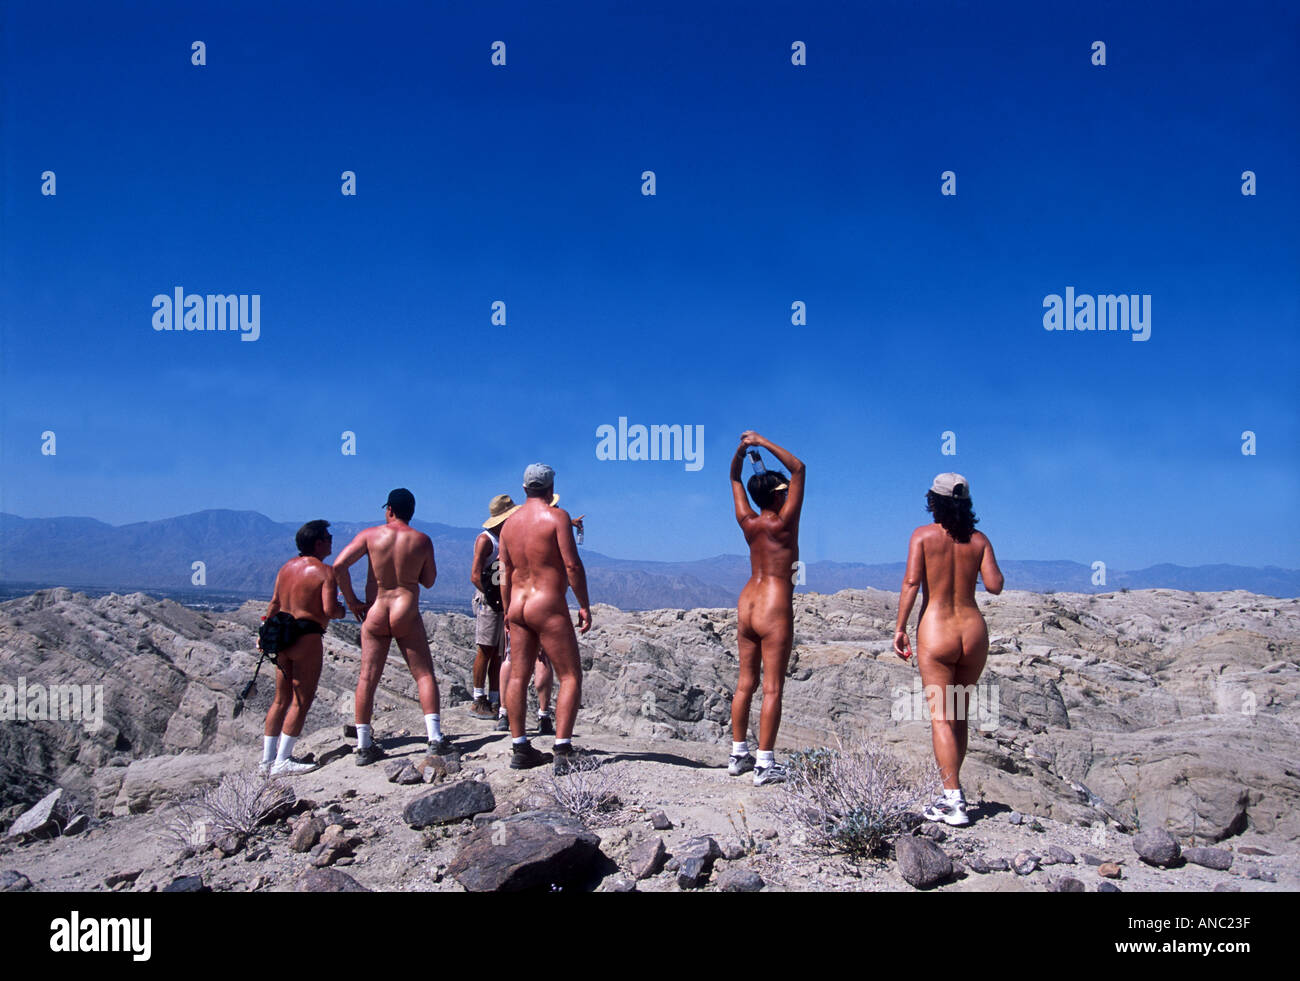 palm springs naked